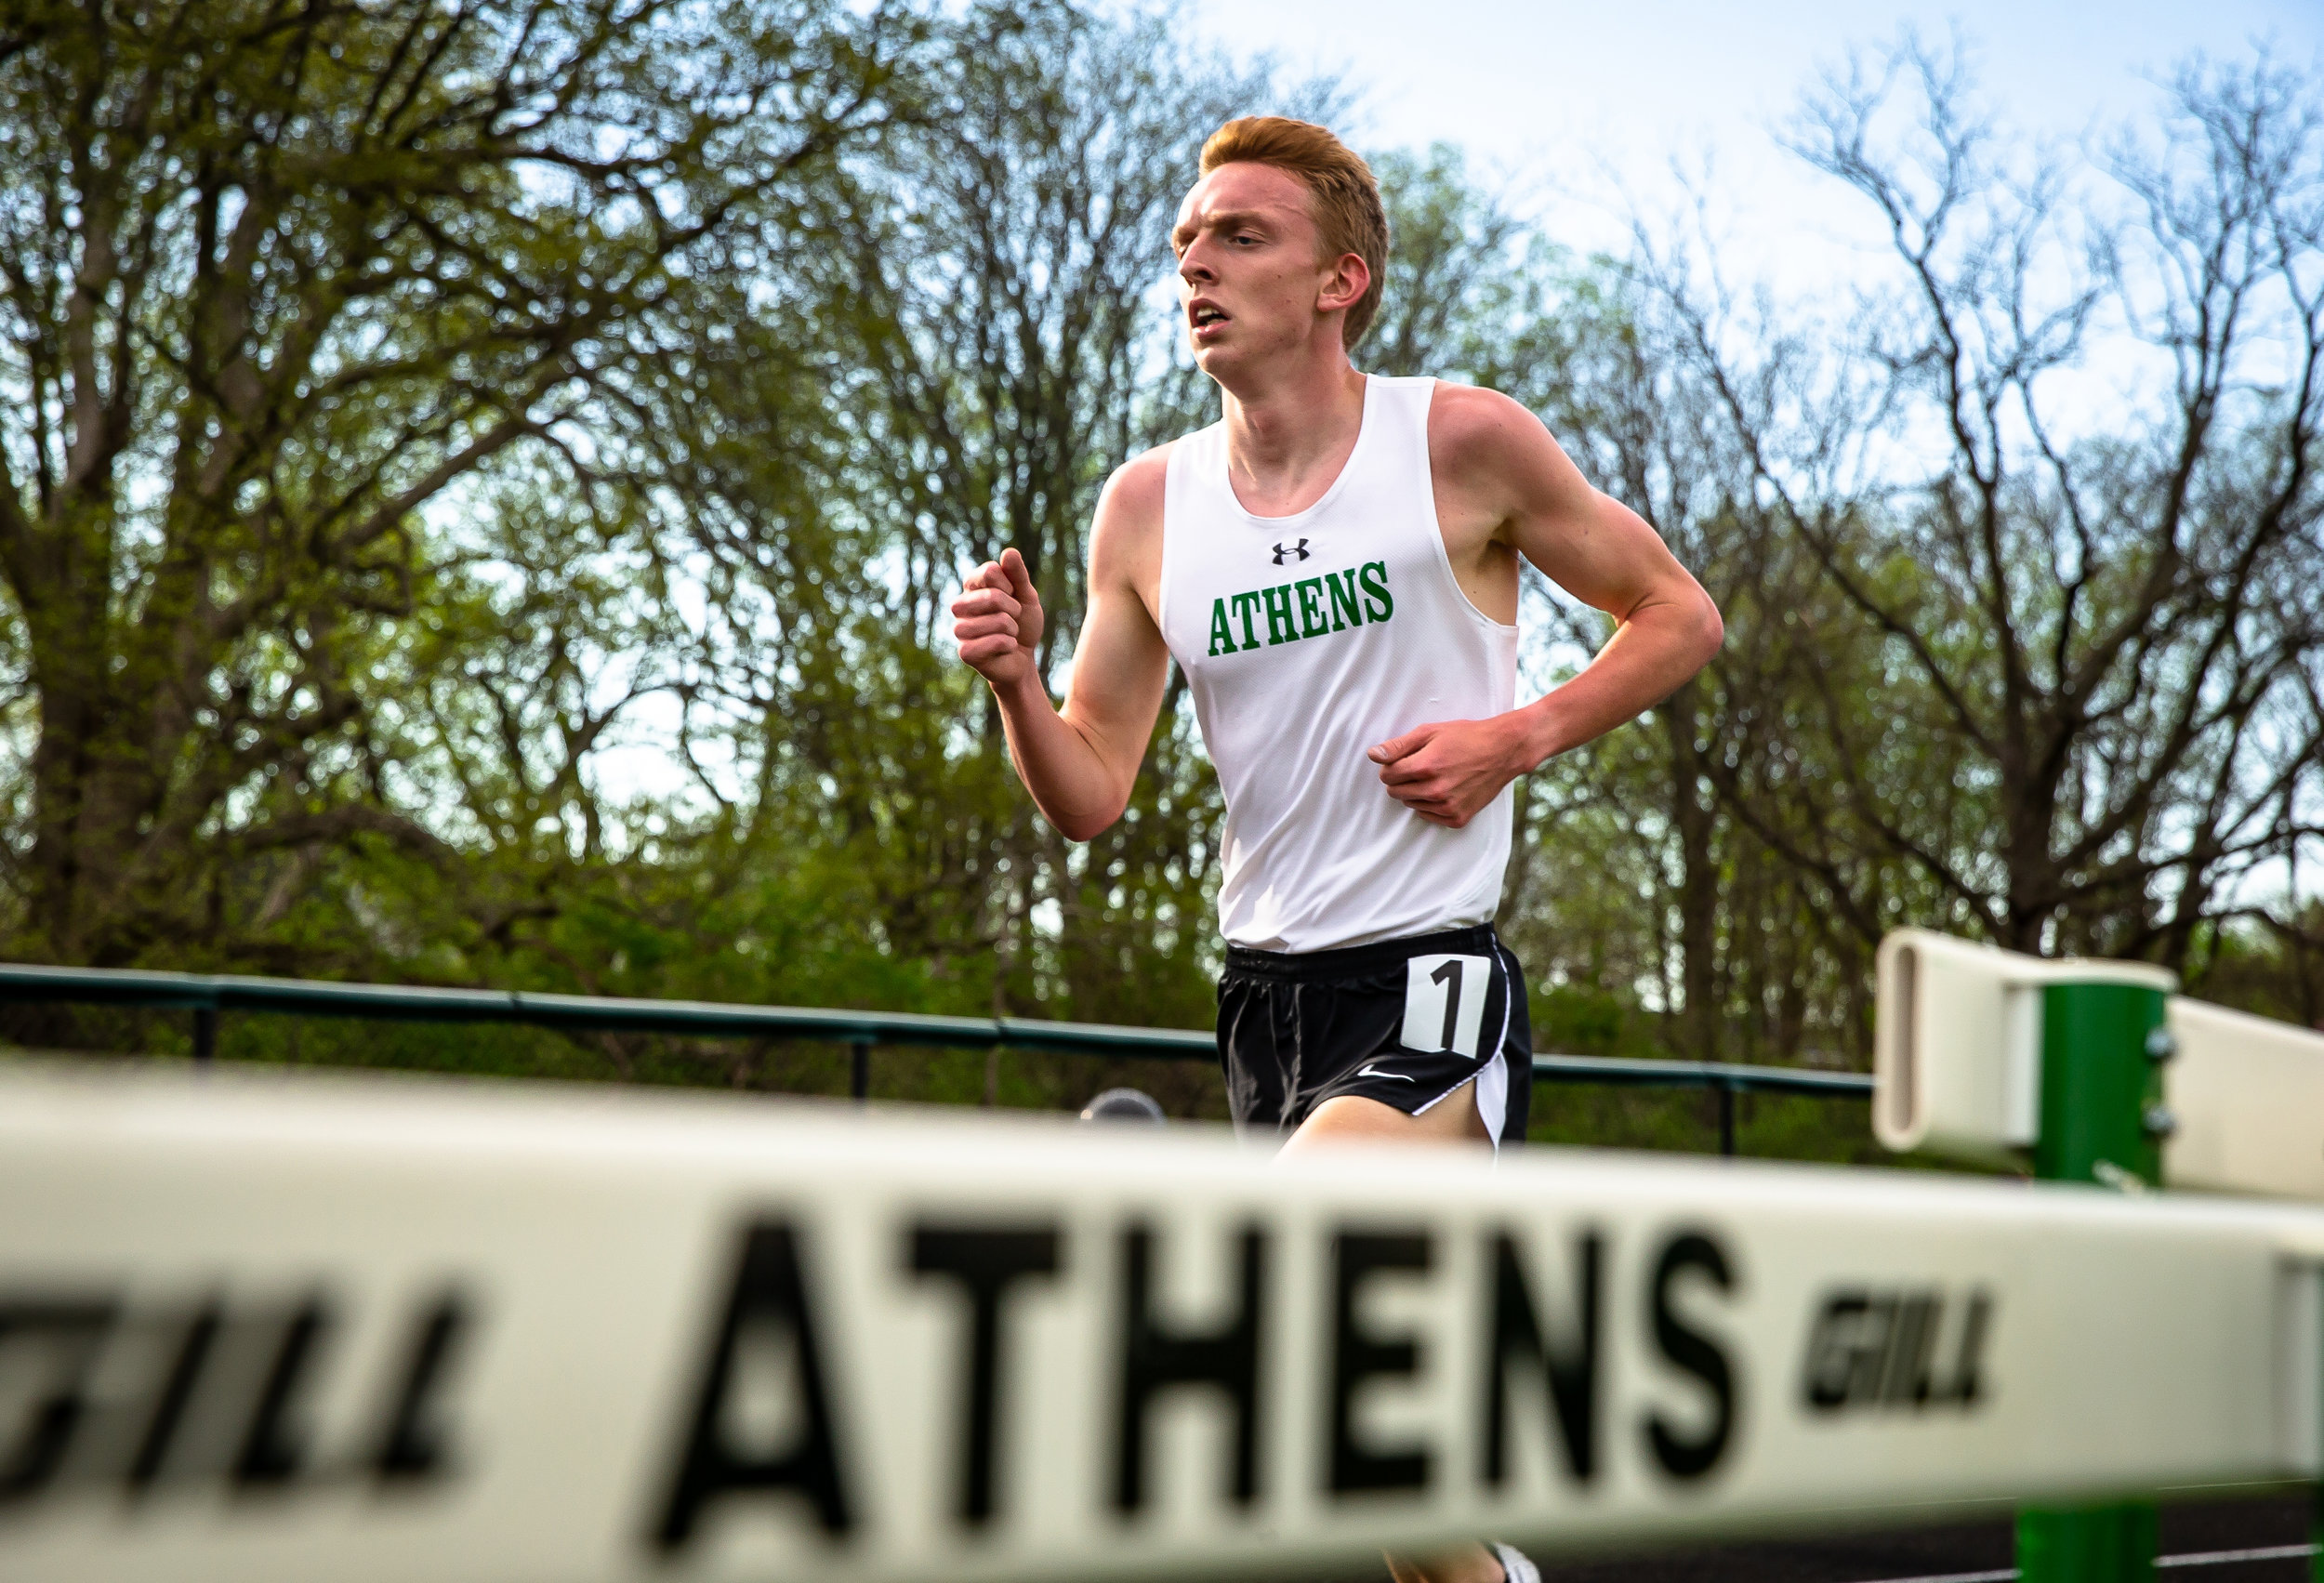 Athens' Wyatt McIntyre wins the Boys 3200m Run with a time of 9:25.19 during the Sangamon County Track & Field Meet at Athens High School, Friday, May 4, 2018, in Athens, Ill. [Justin L. Fowler/The State Journal-Register]